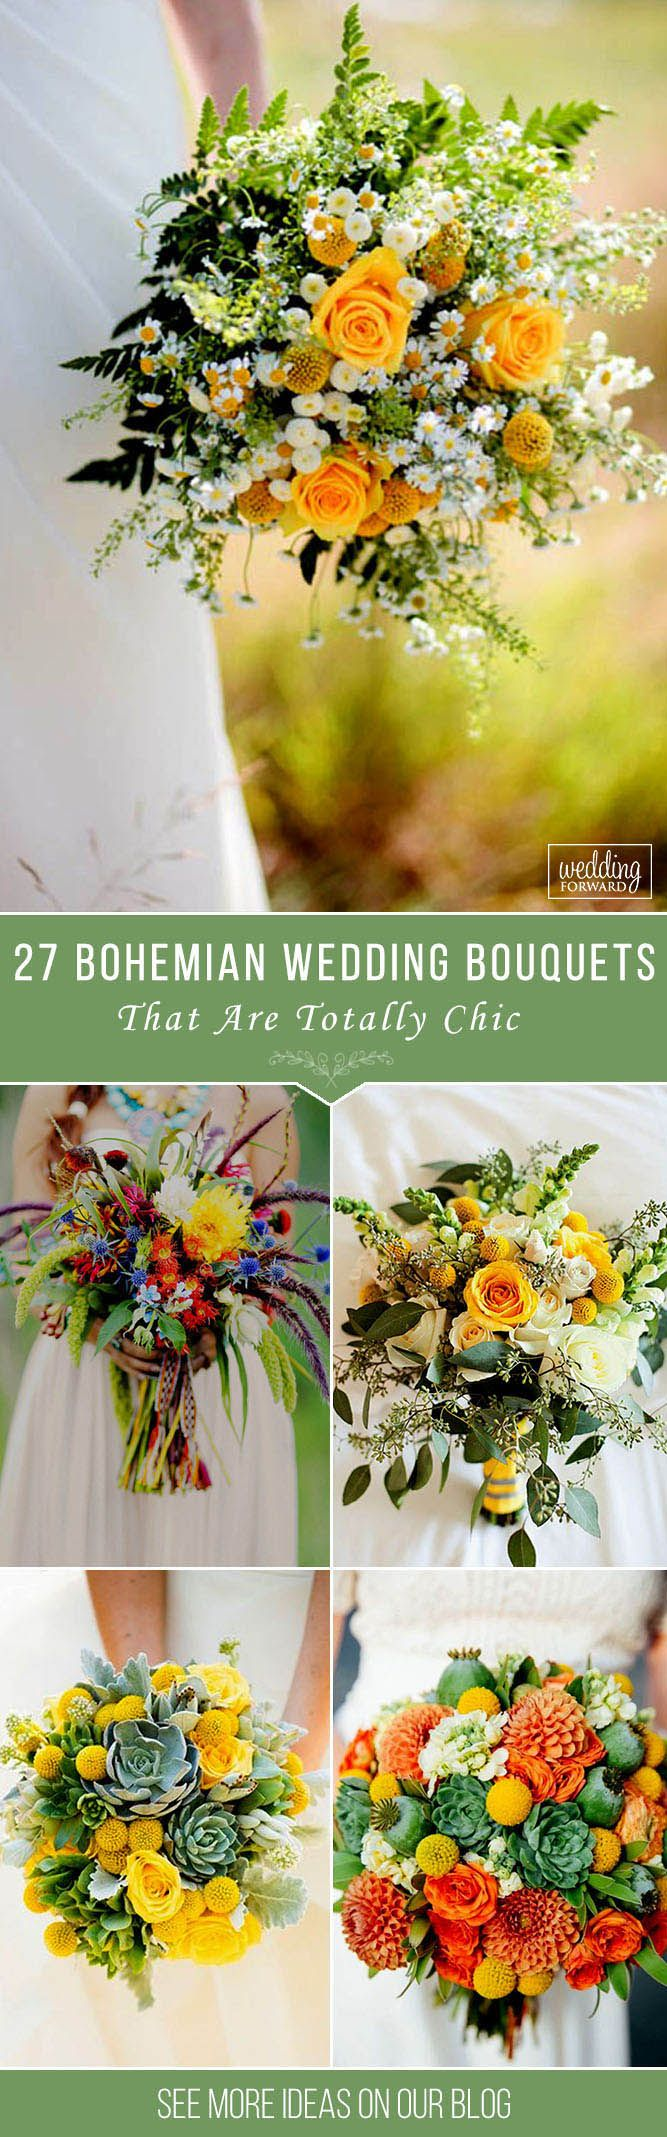 27 Bohemian Wedding Bouquets That Are Totally Chic ❤ Bohemian wedding bouquets are full of whimsical details, wild flowers and feathers. This inspiration gallery of boho-chic wedding bouquets is sure to create an amazing vibe. See more: http://www.weddingforward.com/bohemian-wedding-bouquets/ #wedding #bouquets